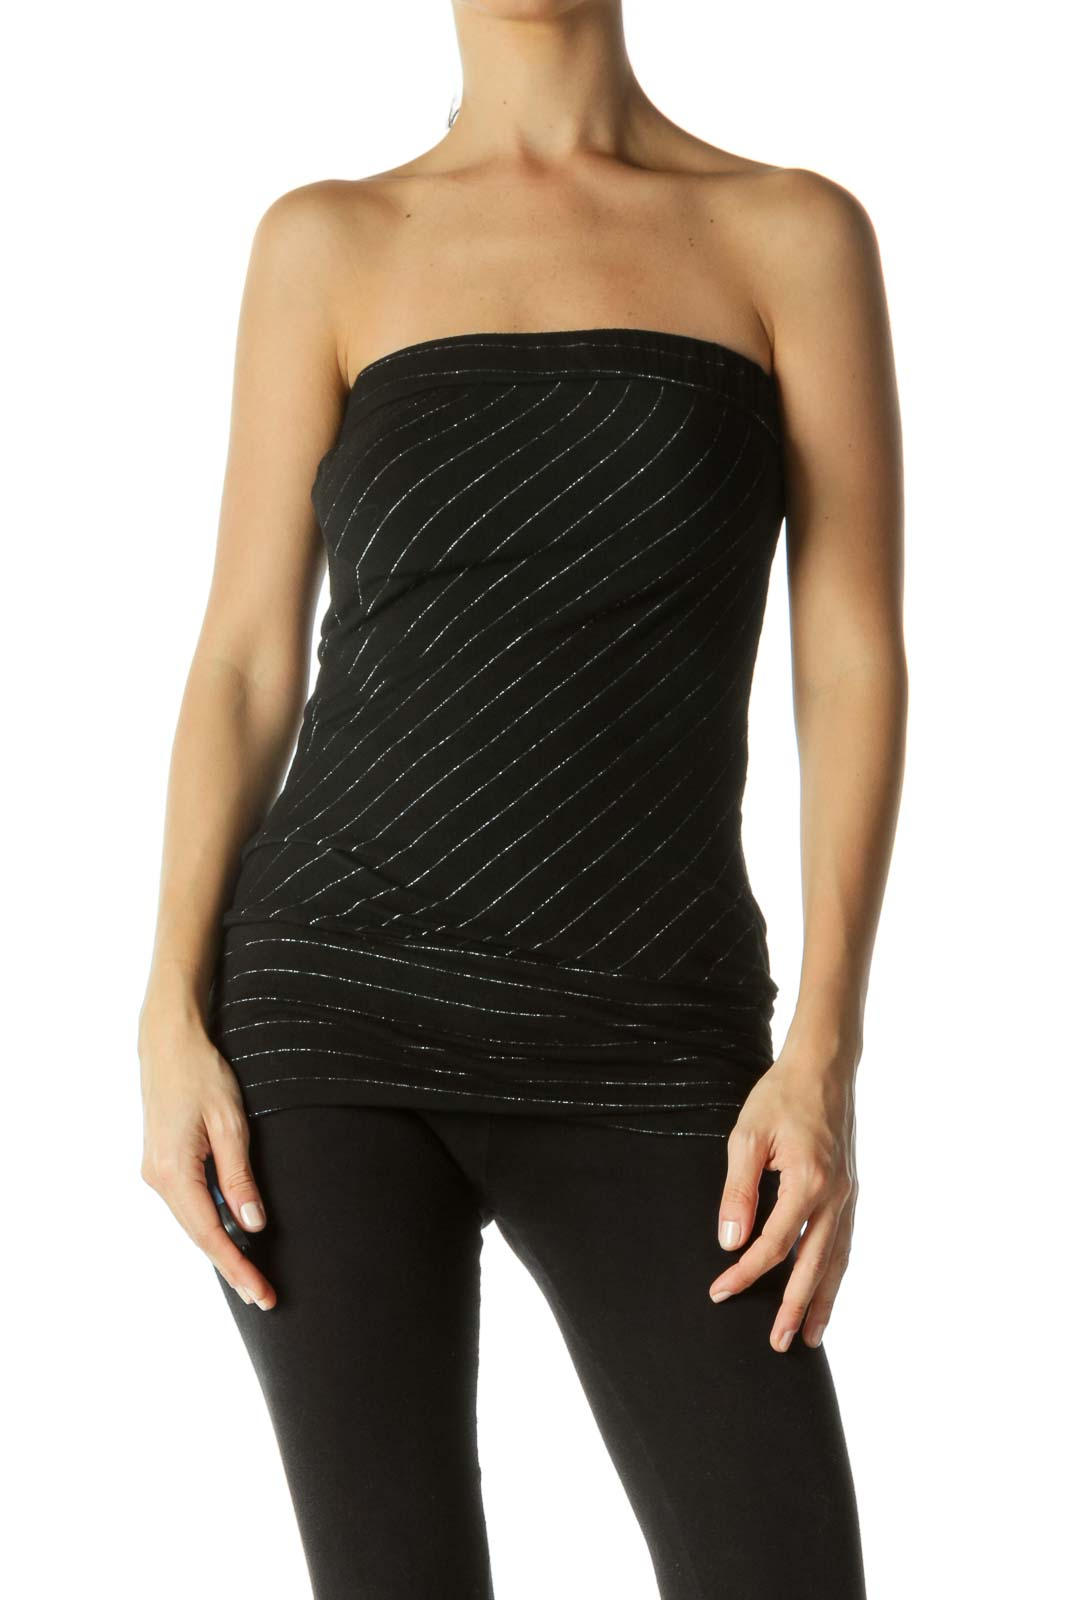 Black Silver Asymmetrical Stripes Elastic Band Strapless Top Front